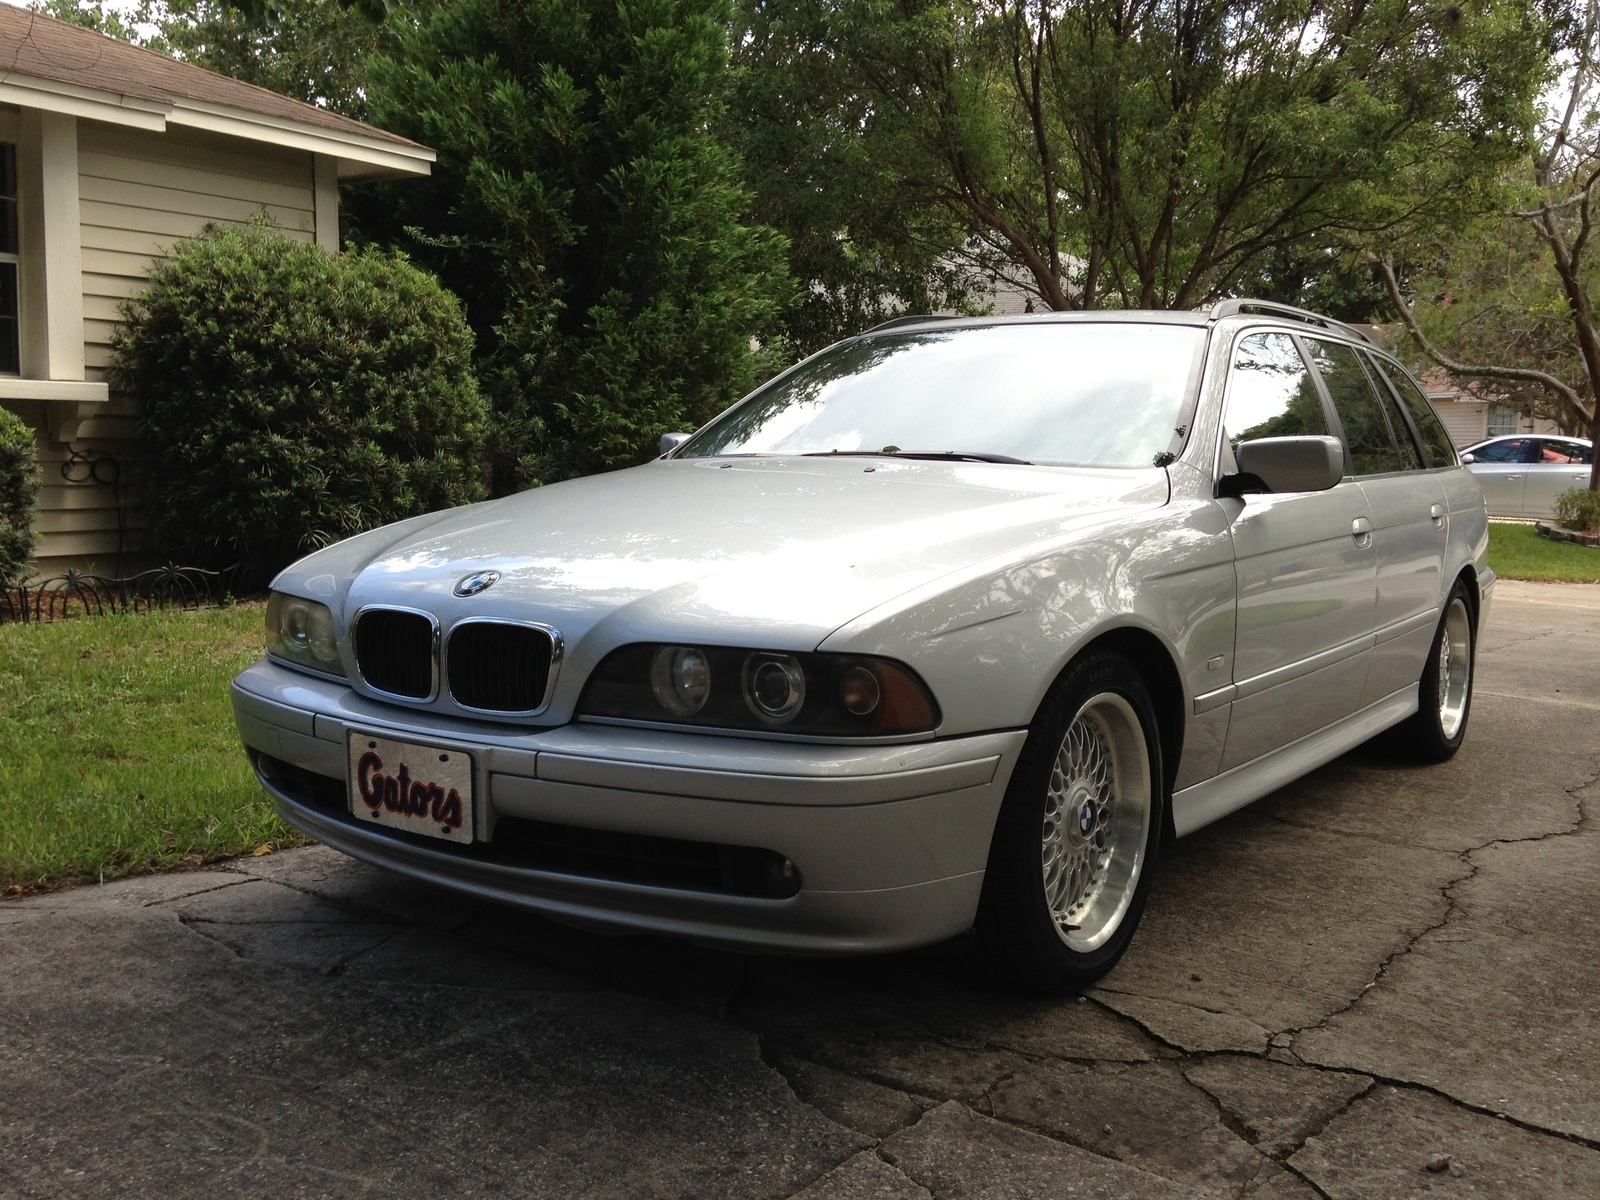 2003 bmw 525i sport package with 87 450 miles what will value be for the vehicle